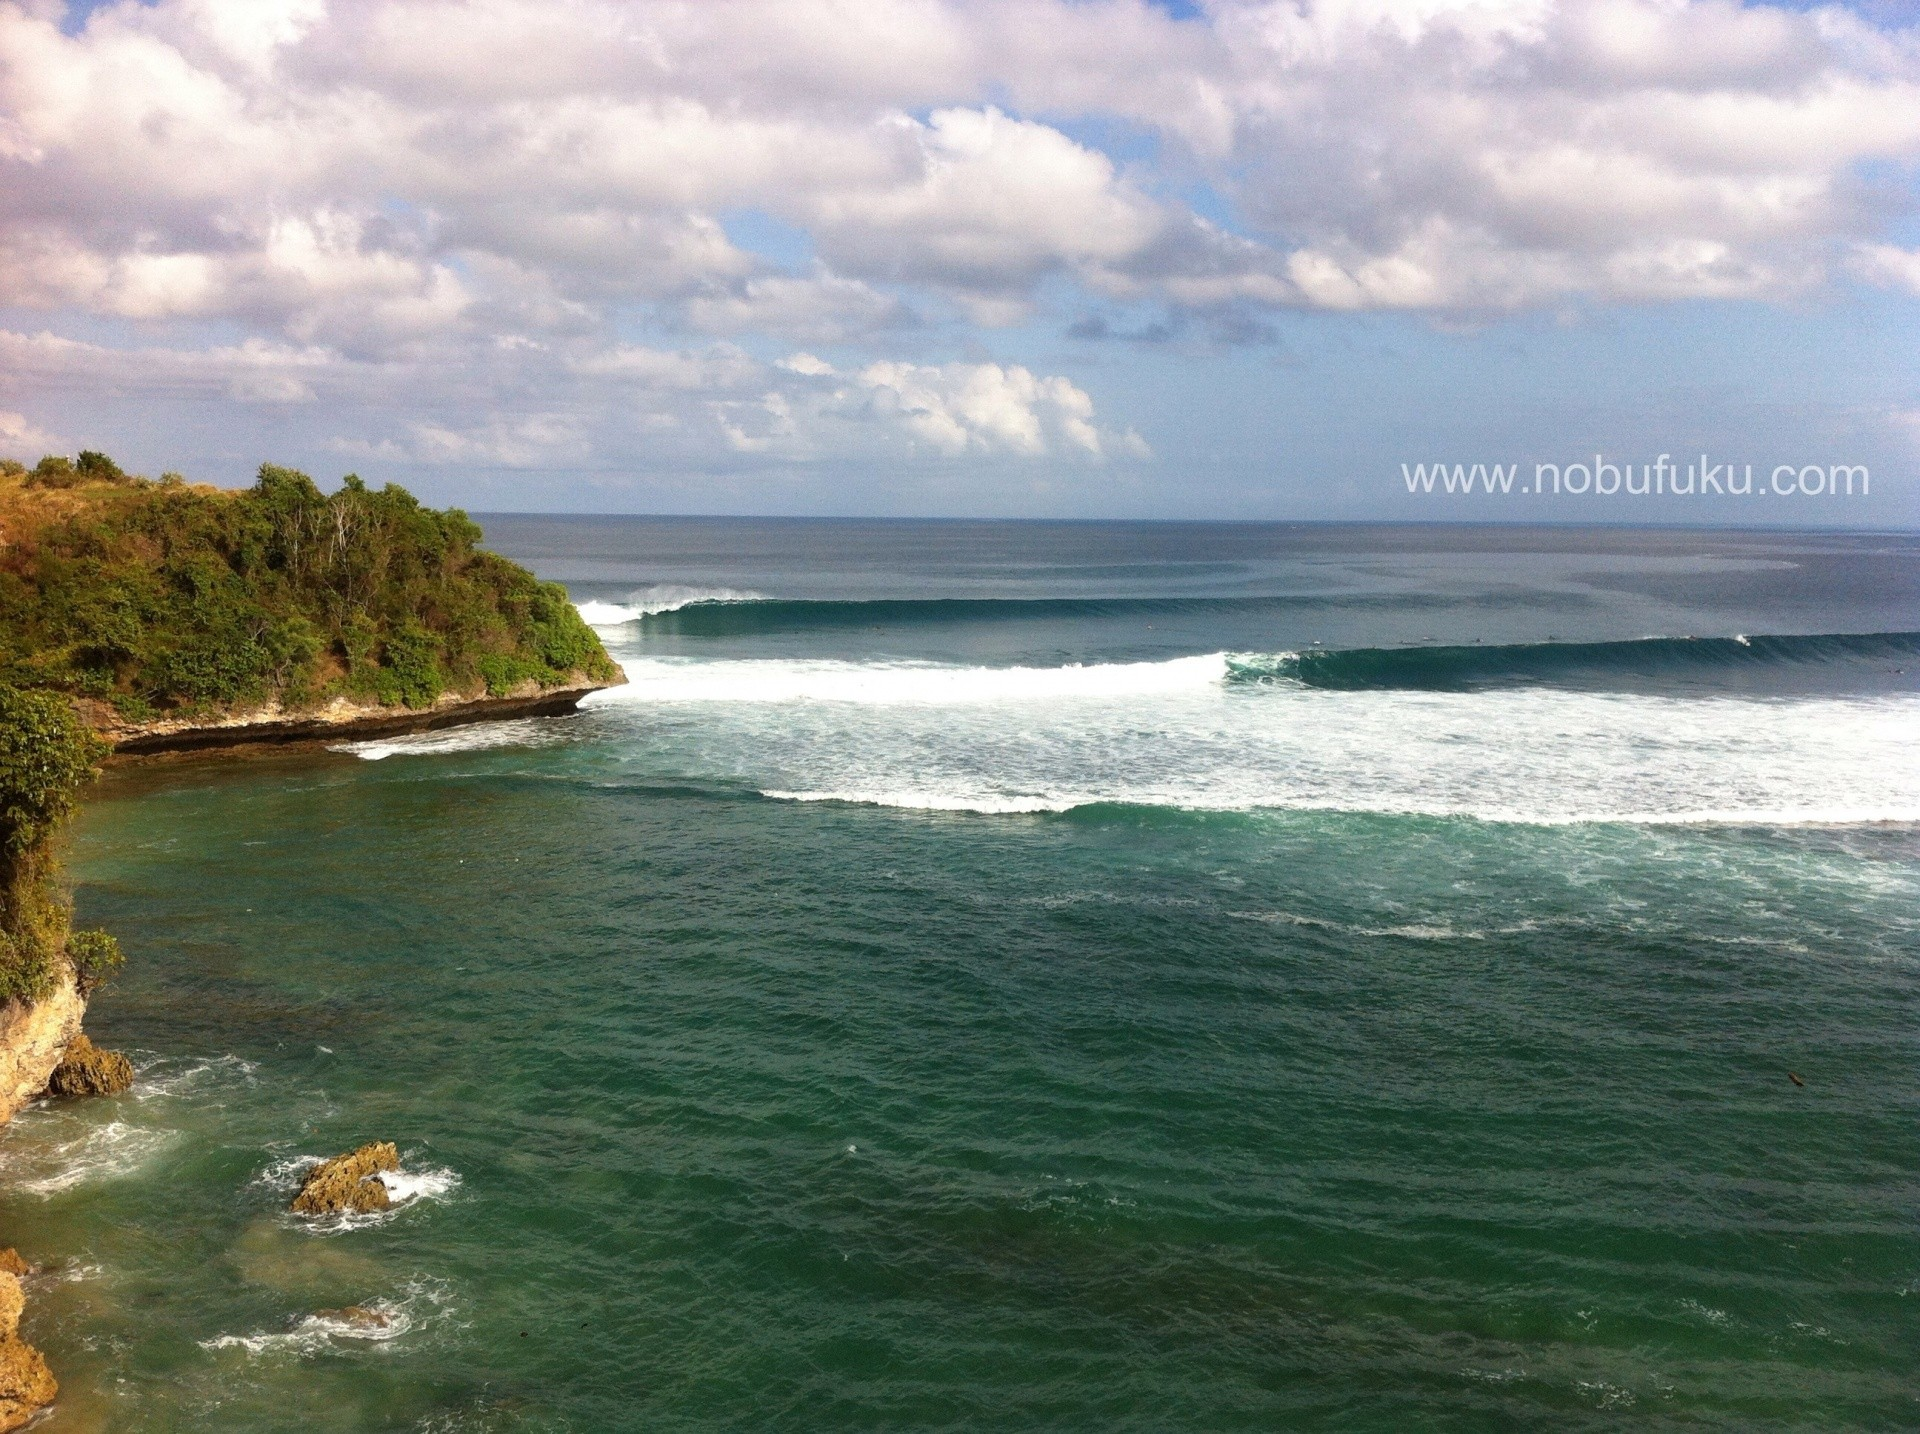 Nobu Fuku's photo of Balangan